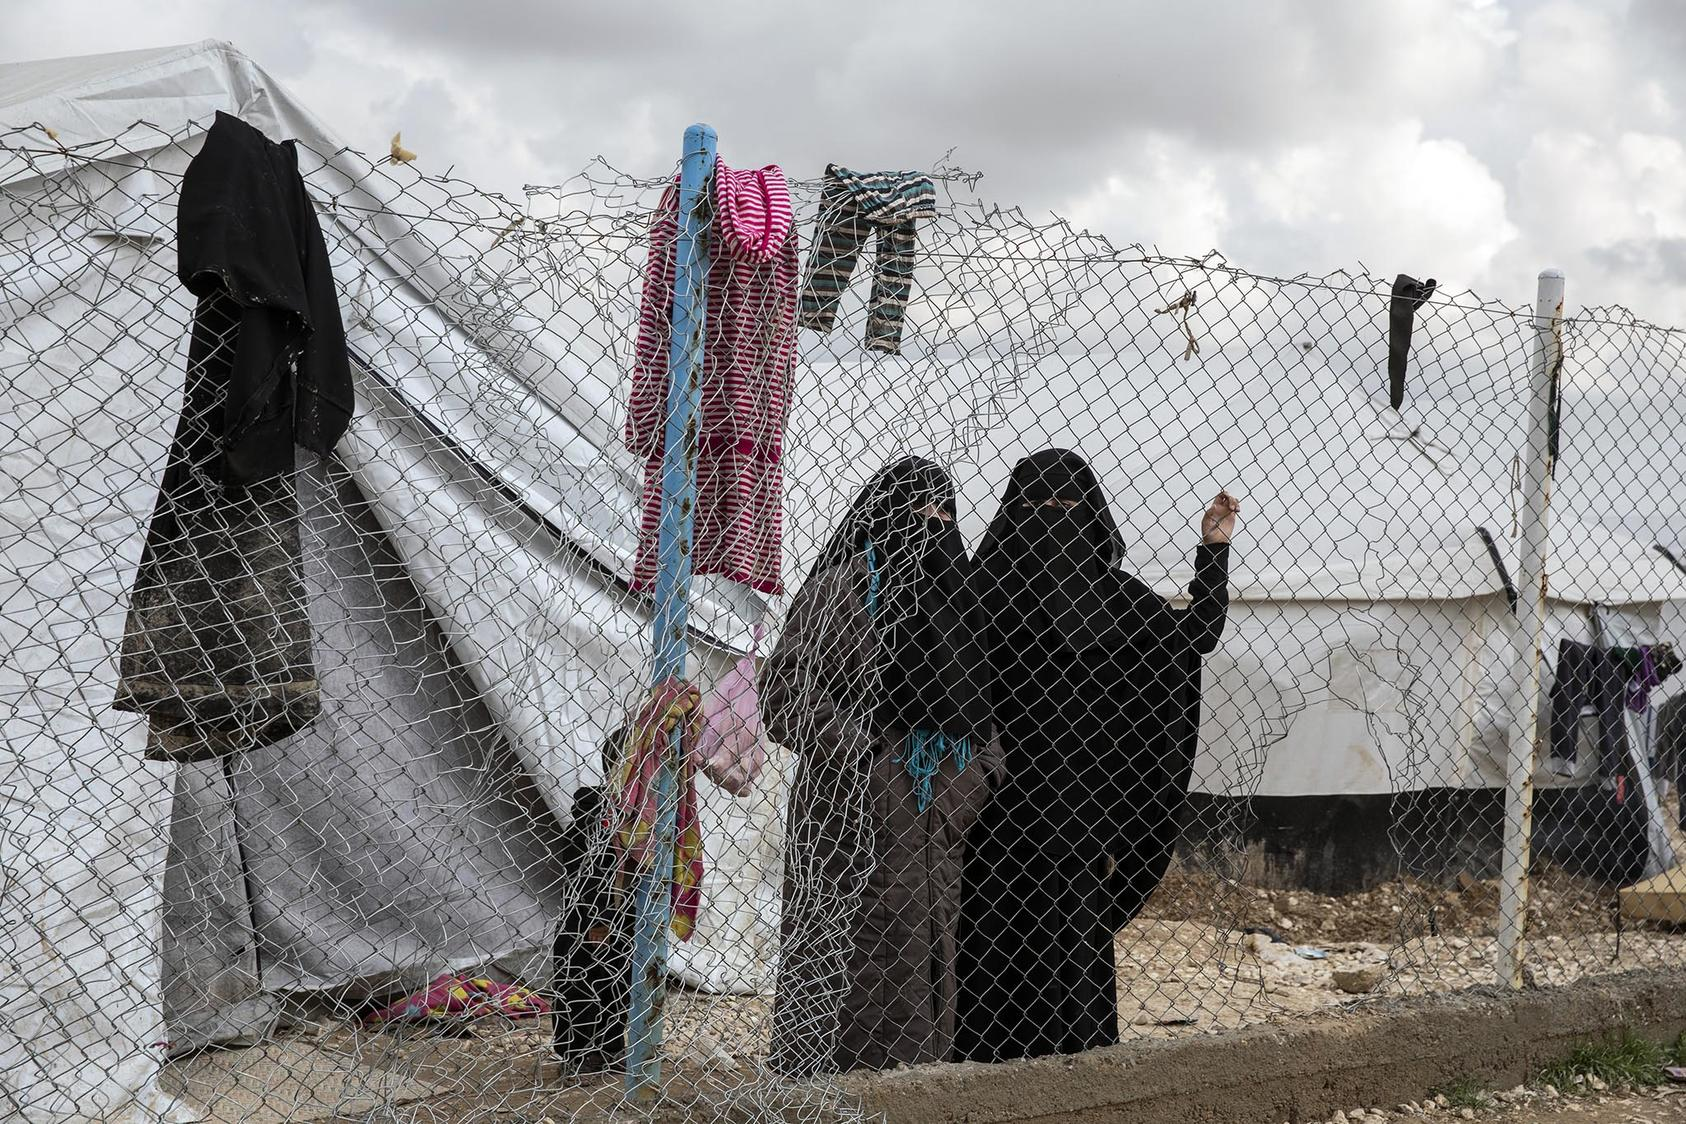 Women who fled the Islamic State's last areas of control in Syria at the Al Hol camp in northern Syria on March 28, 2019. (Ivor Prickett/The New York Times)